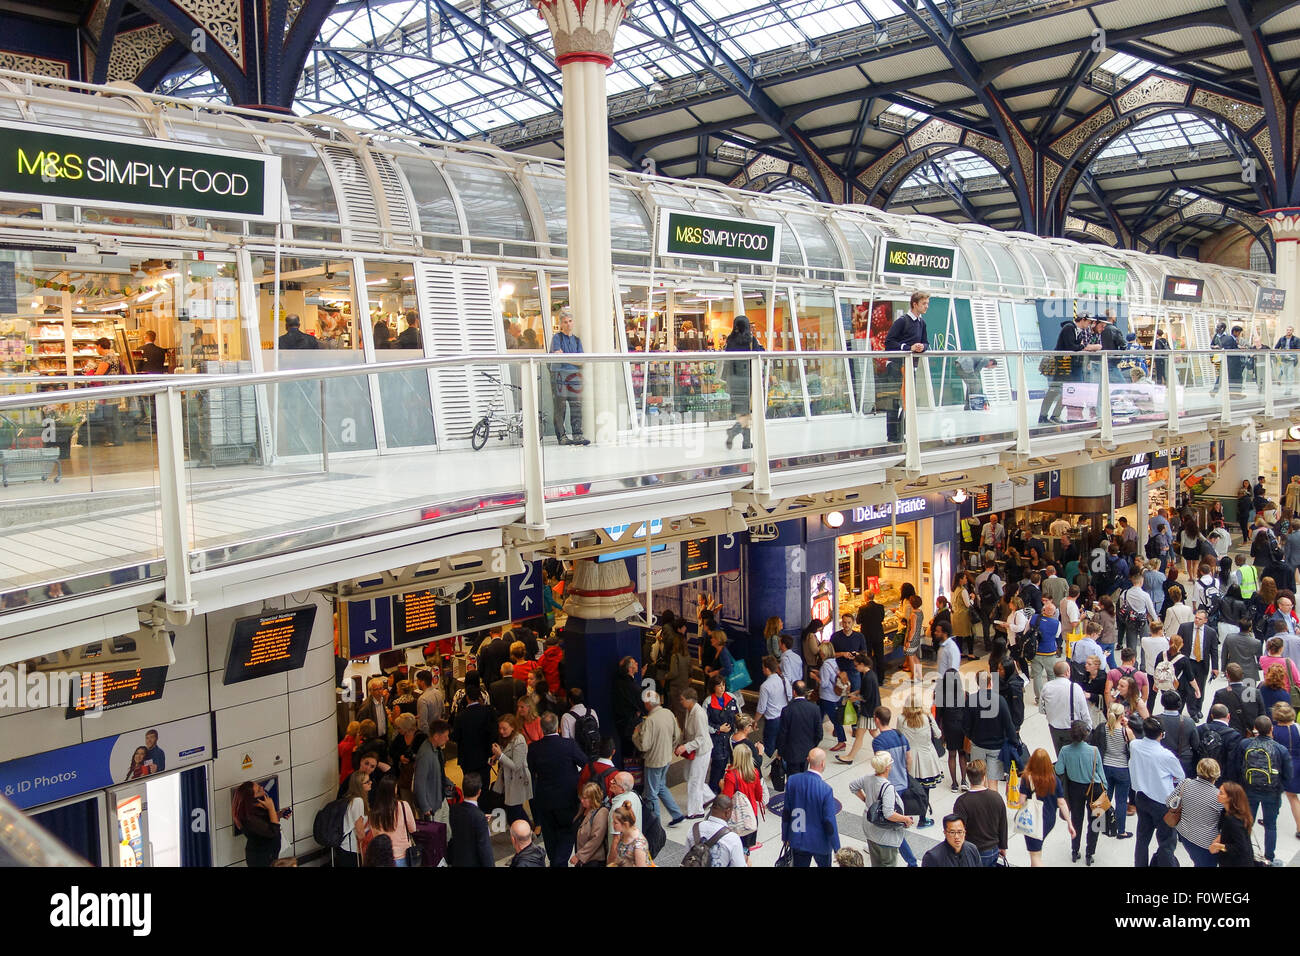 The Marks and Spencer Simply Food Store at Liverpool Street Station. - Stock Image